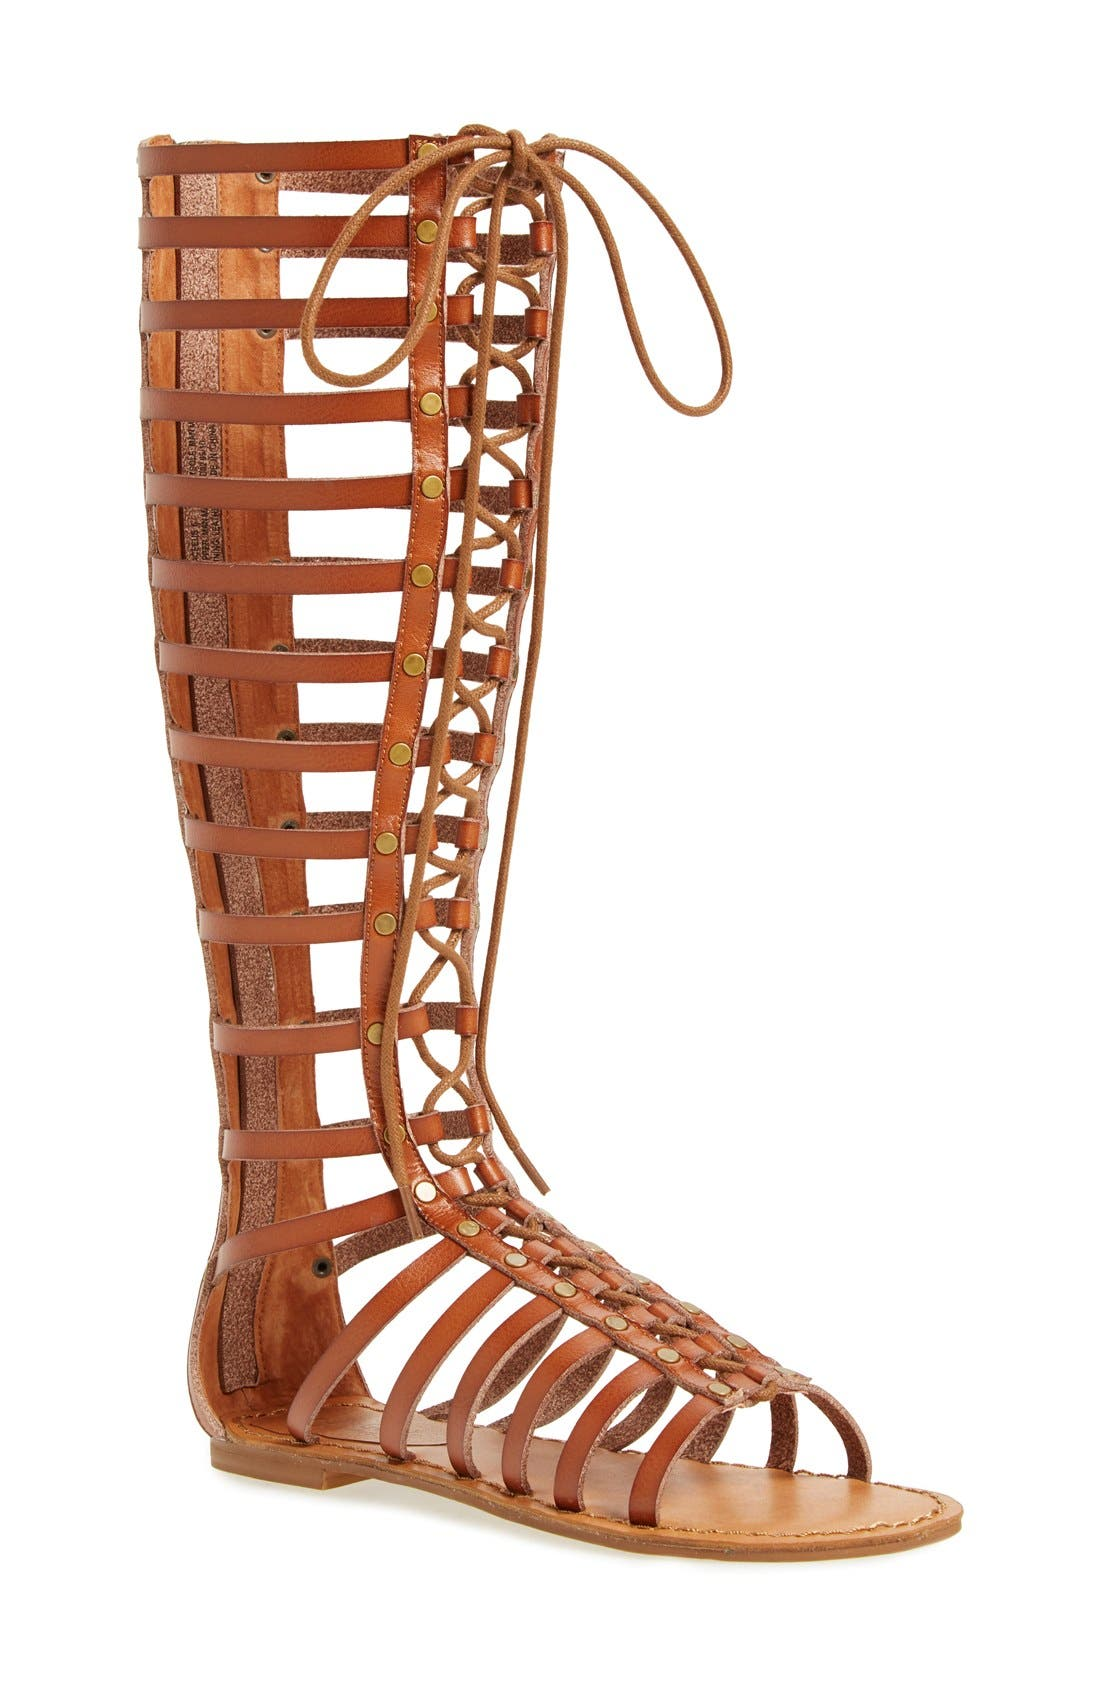 Alternate Image 1 Selected - ZiGi girl 'Jacee' Tall Gladiator Sandal (Women)